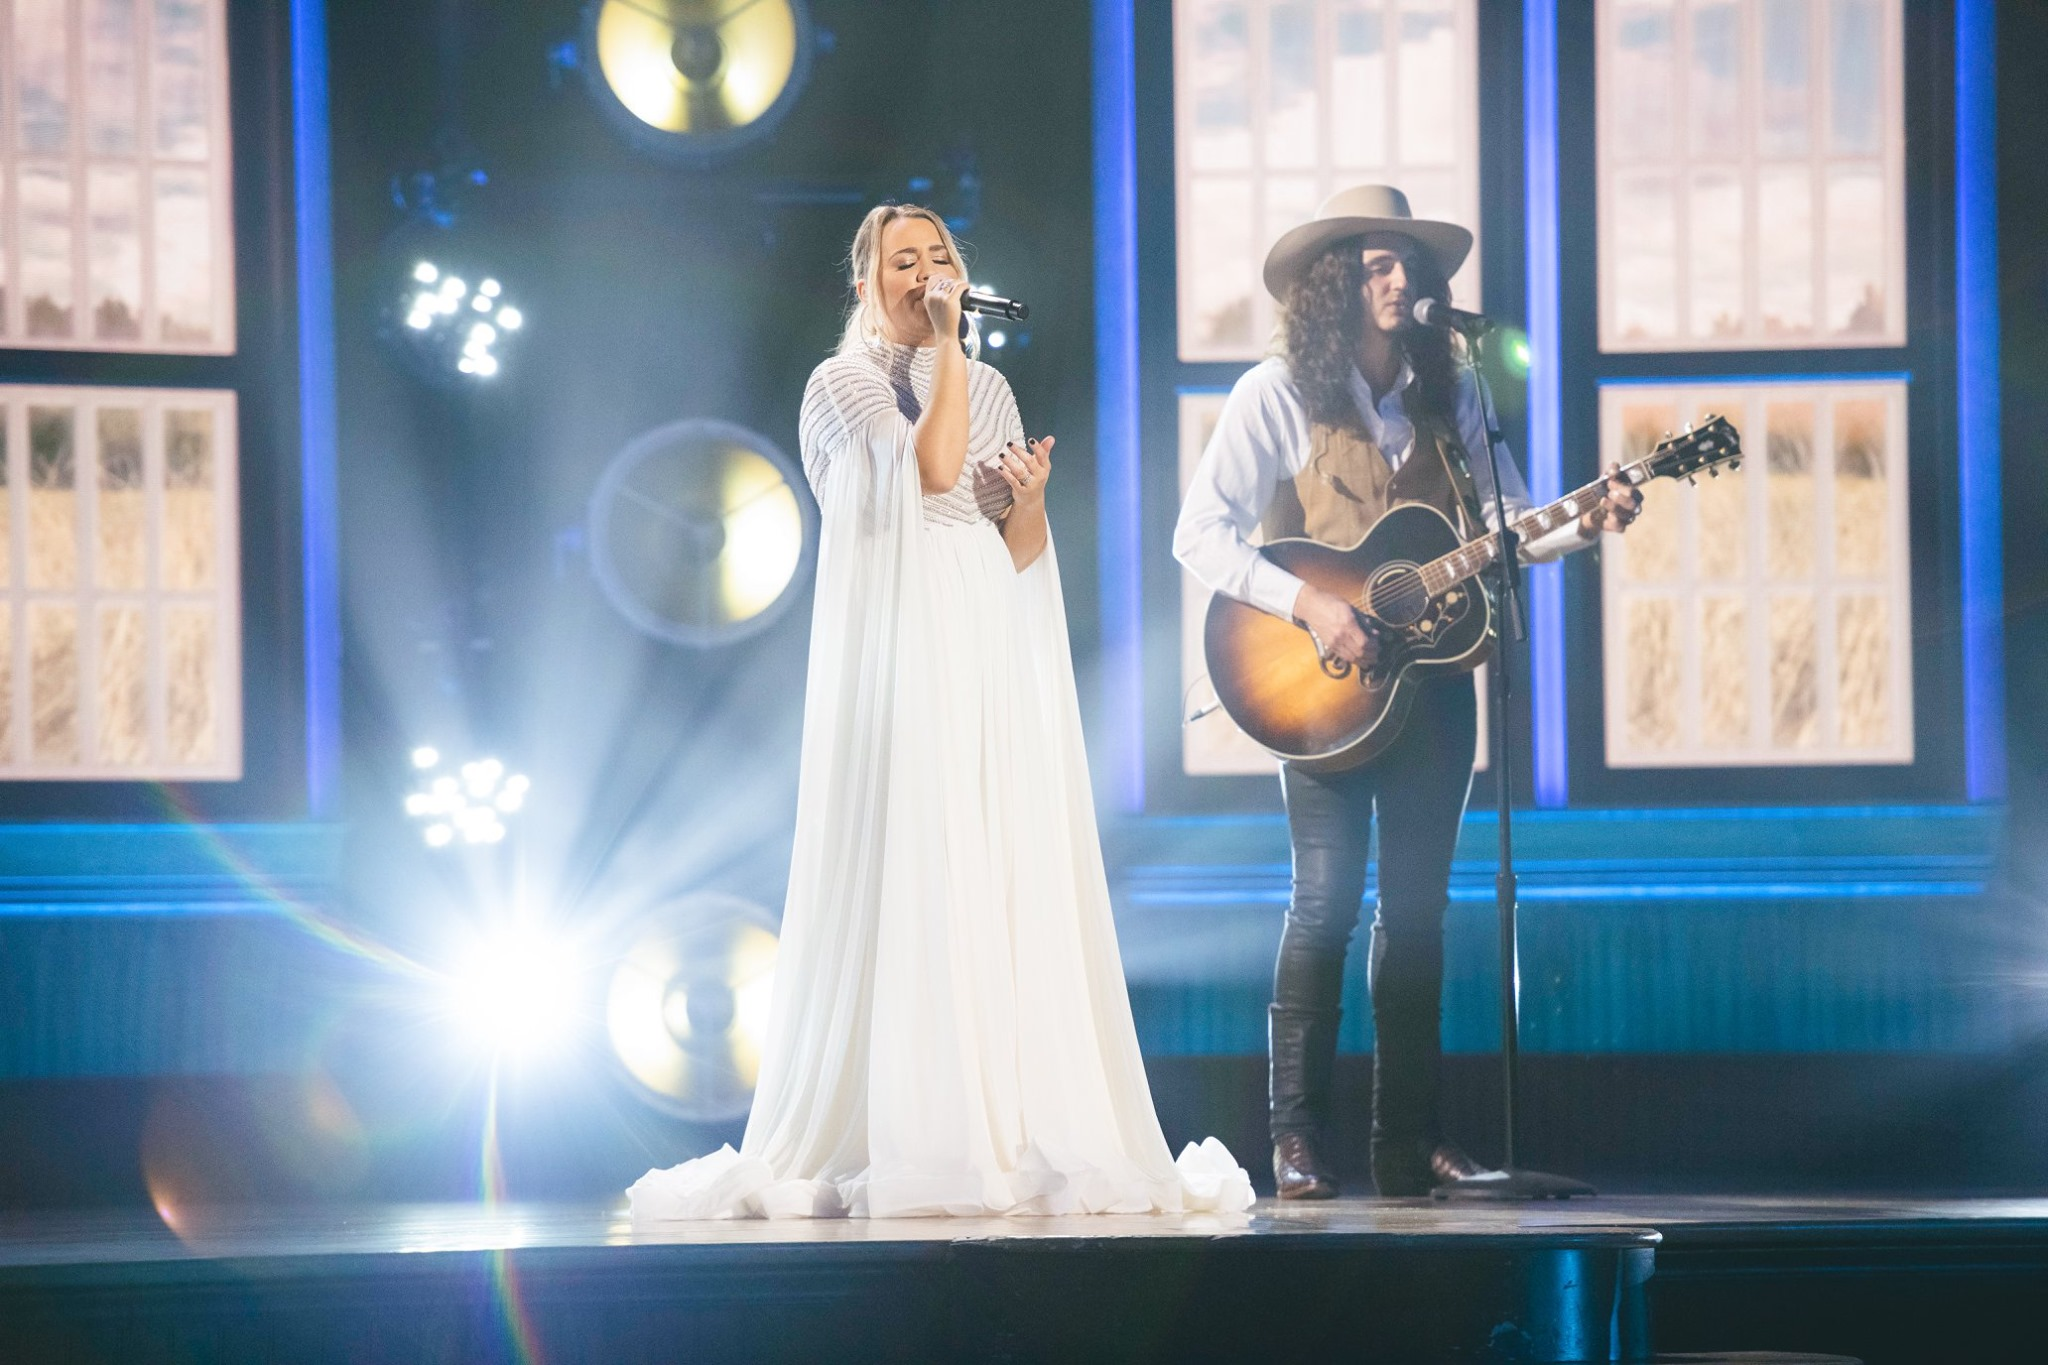 "GABBY BARRETT PERFORMING ""THE GOOD ONES"" WITH CADE FOEHNER AT THE RYMAN AUDITORIUM IN NASHVILLE EXCLUSIVELY FOR XFINITY AHEAD OF THE 55TH ACADEMY OF COUNTRY MUSIC AWARDS. PHOTO CREDIT: ACADEMY OF COUNTRY MUSIC AWARDS"